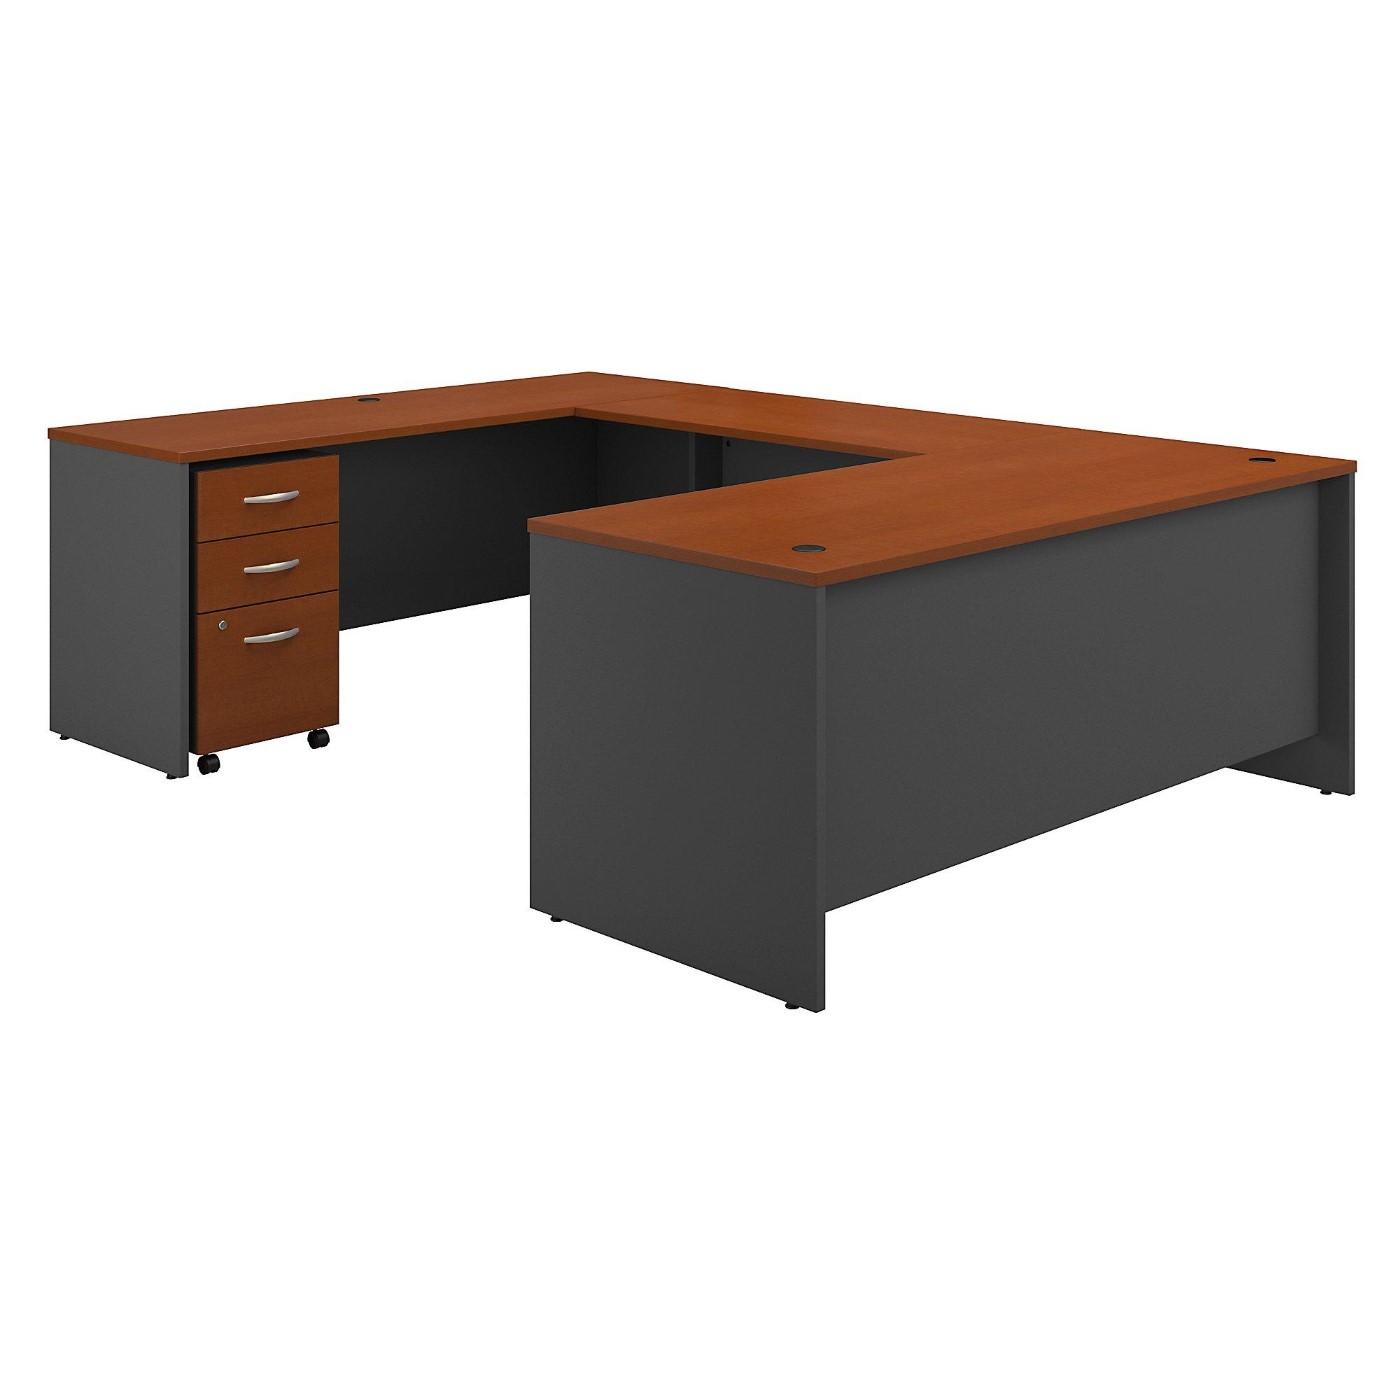 BUSH BUSINESS FURNITURE SERIES C 72W X 30D U SHAPED DESK WITH MOBILE FILE CABINET. FREE SHIPPING</font></b></font>&#x1F384<font color=red><b>ERGONOMICHOME HOLIDAY SALE - ENDS DEC. 17, 2019</b></font>&#x1F384